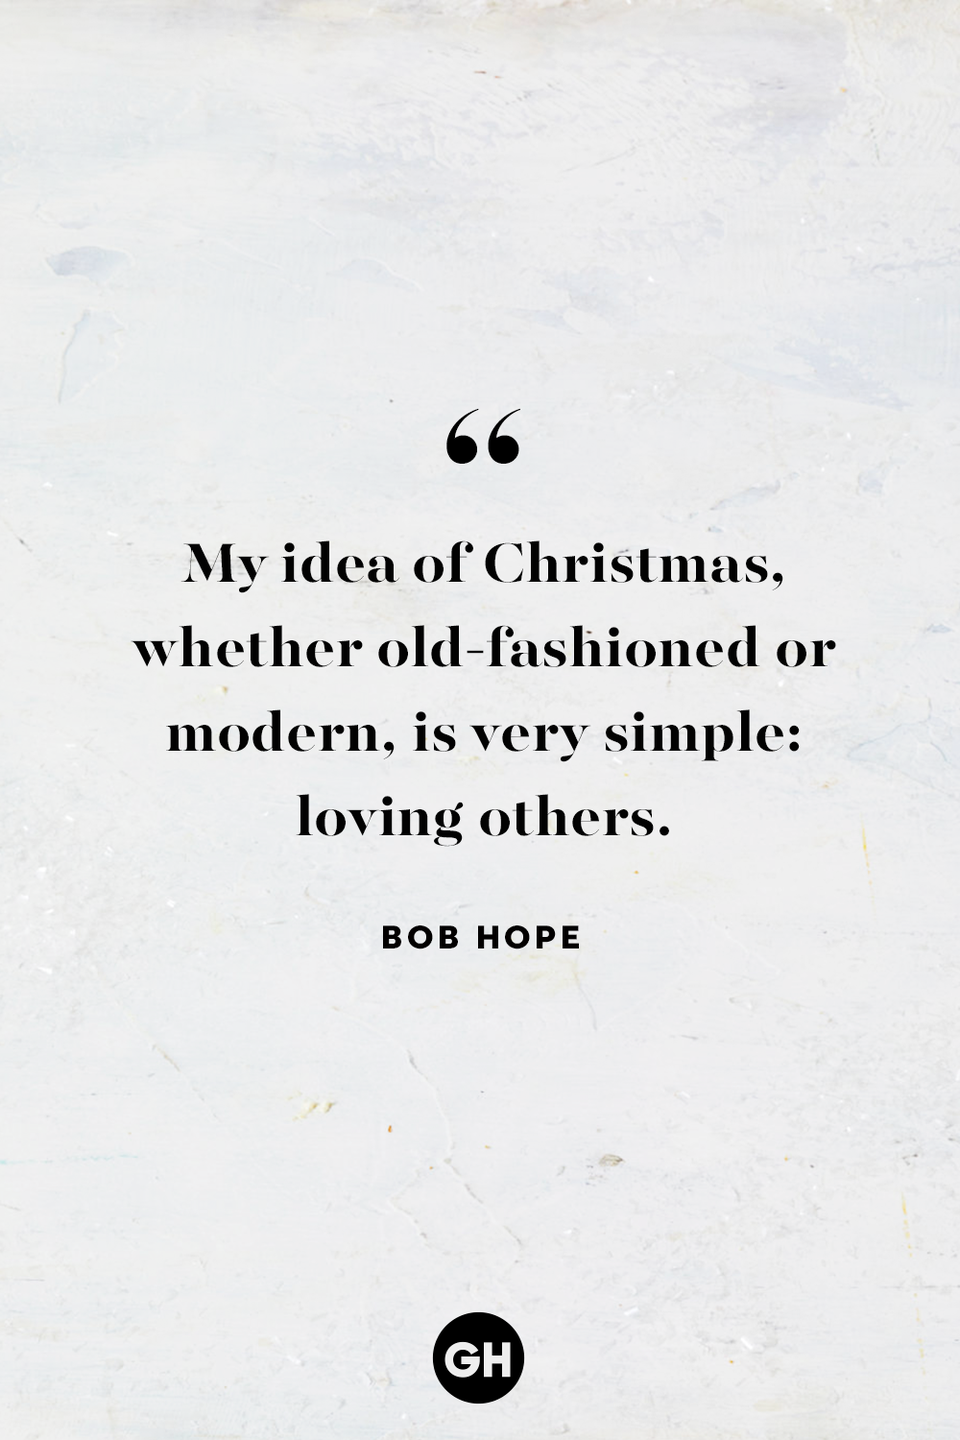 <p>My idea of Christmas, whether old-fashioned or modern, is very simple: loving others.</p>